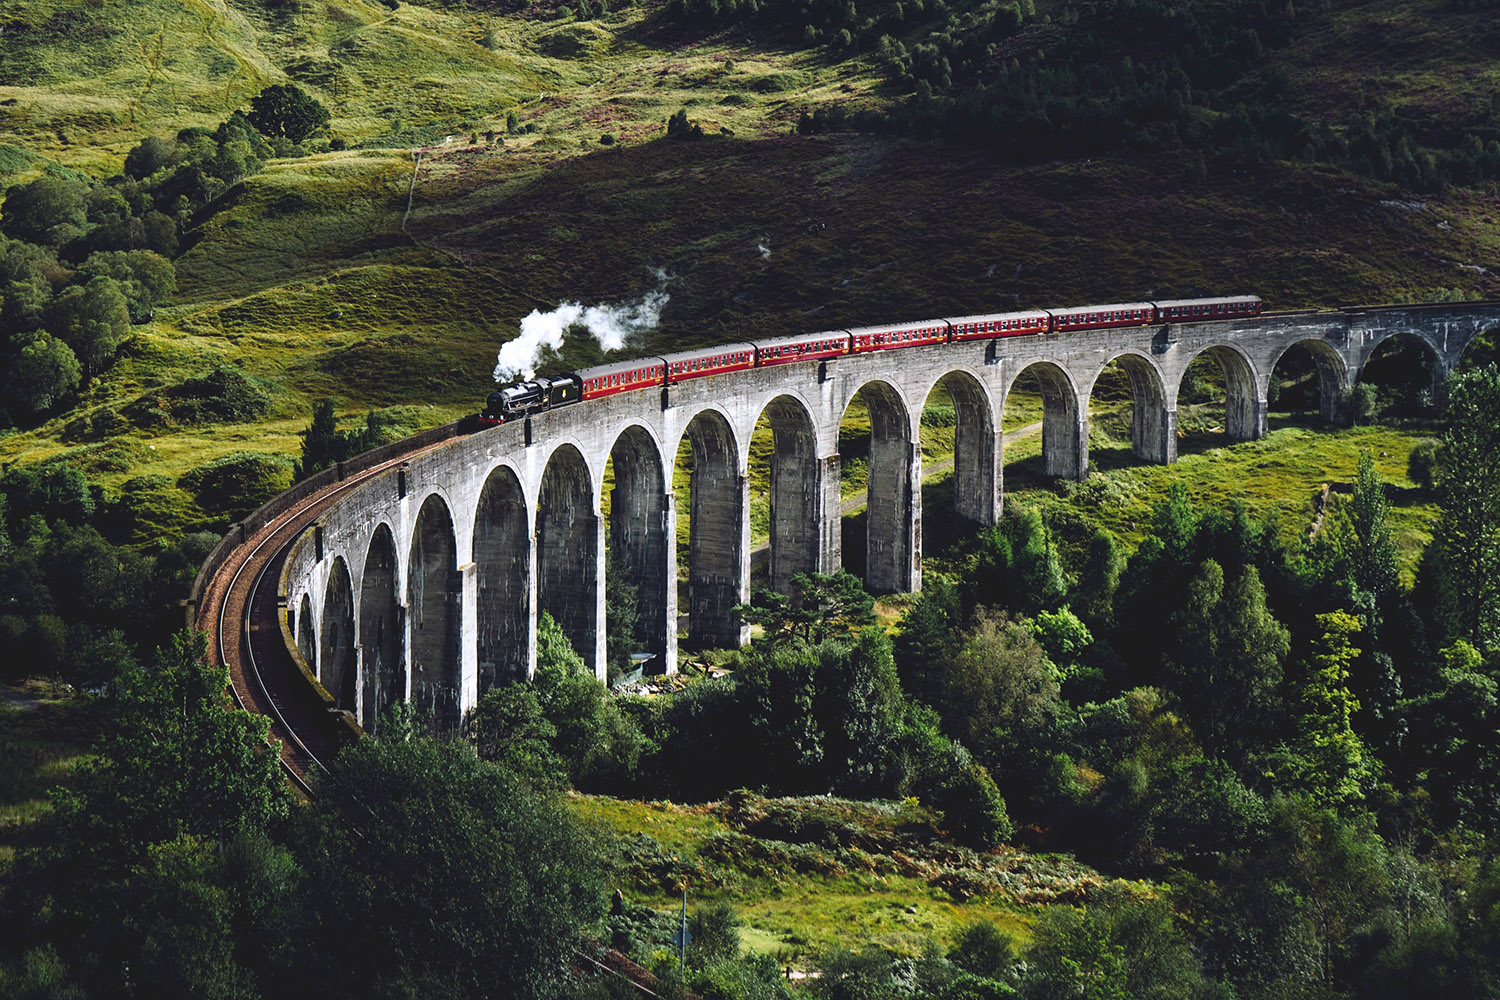 Glenfinnan Viaduct features in our tour of the Scottish Islands - The Islander tour